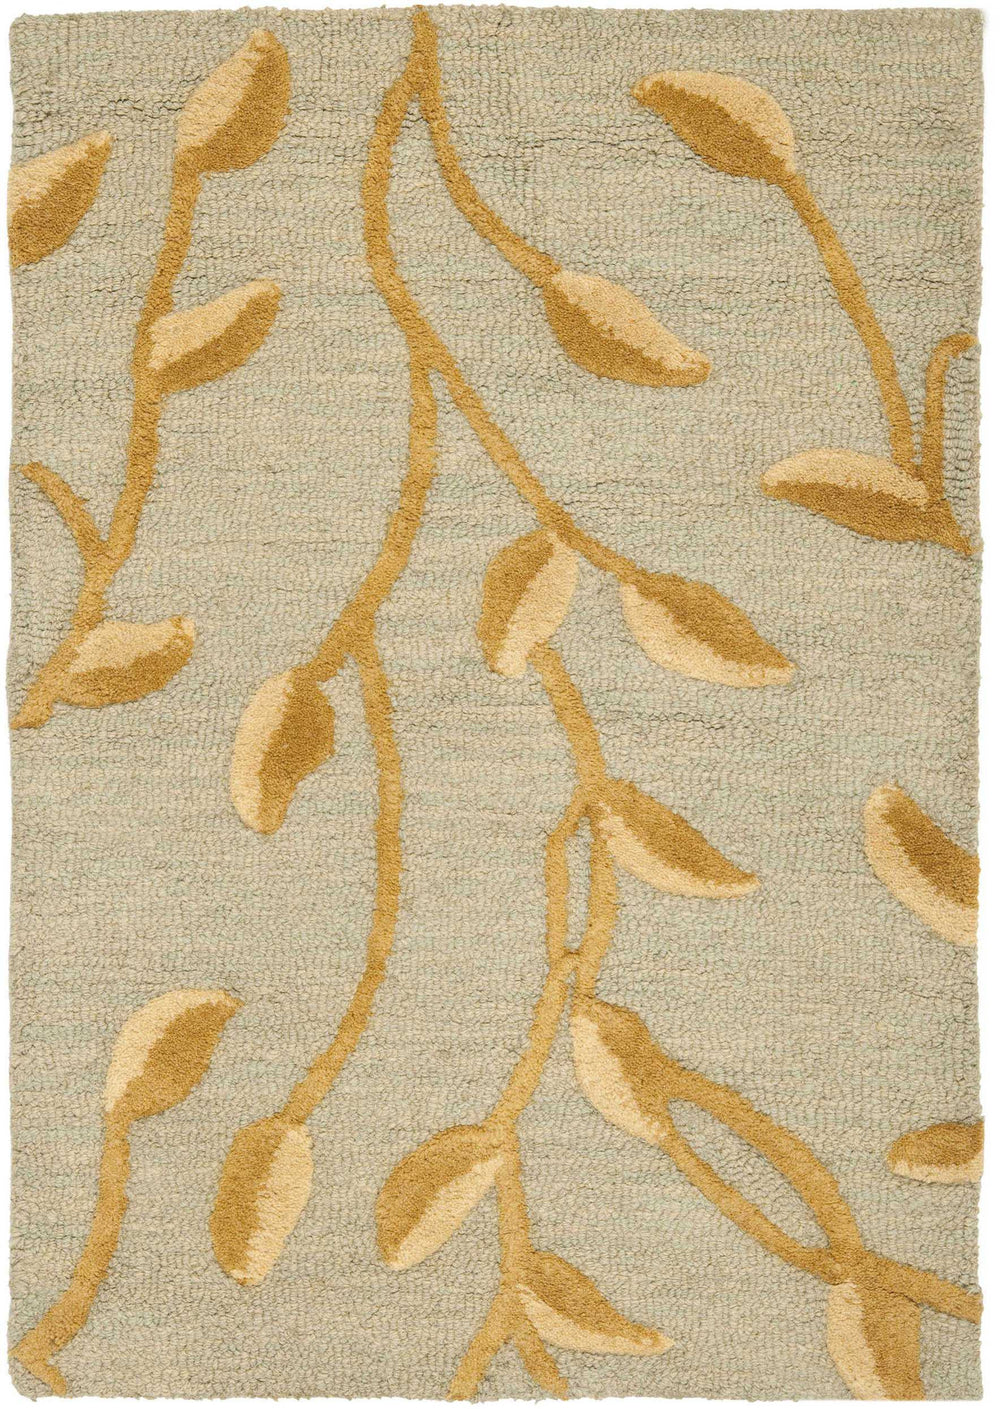 Safavieh Rodeo Drive RD953 Area Rug